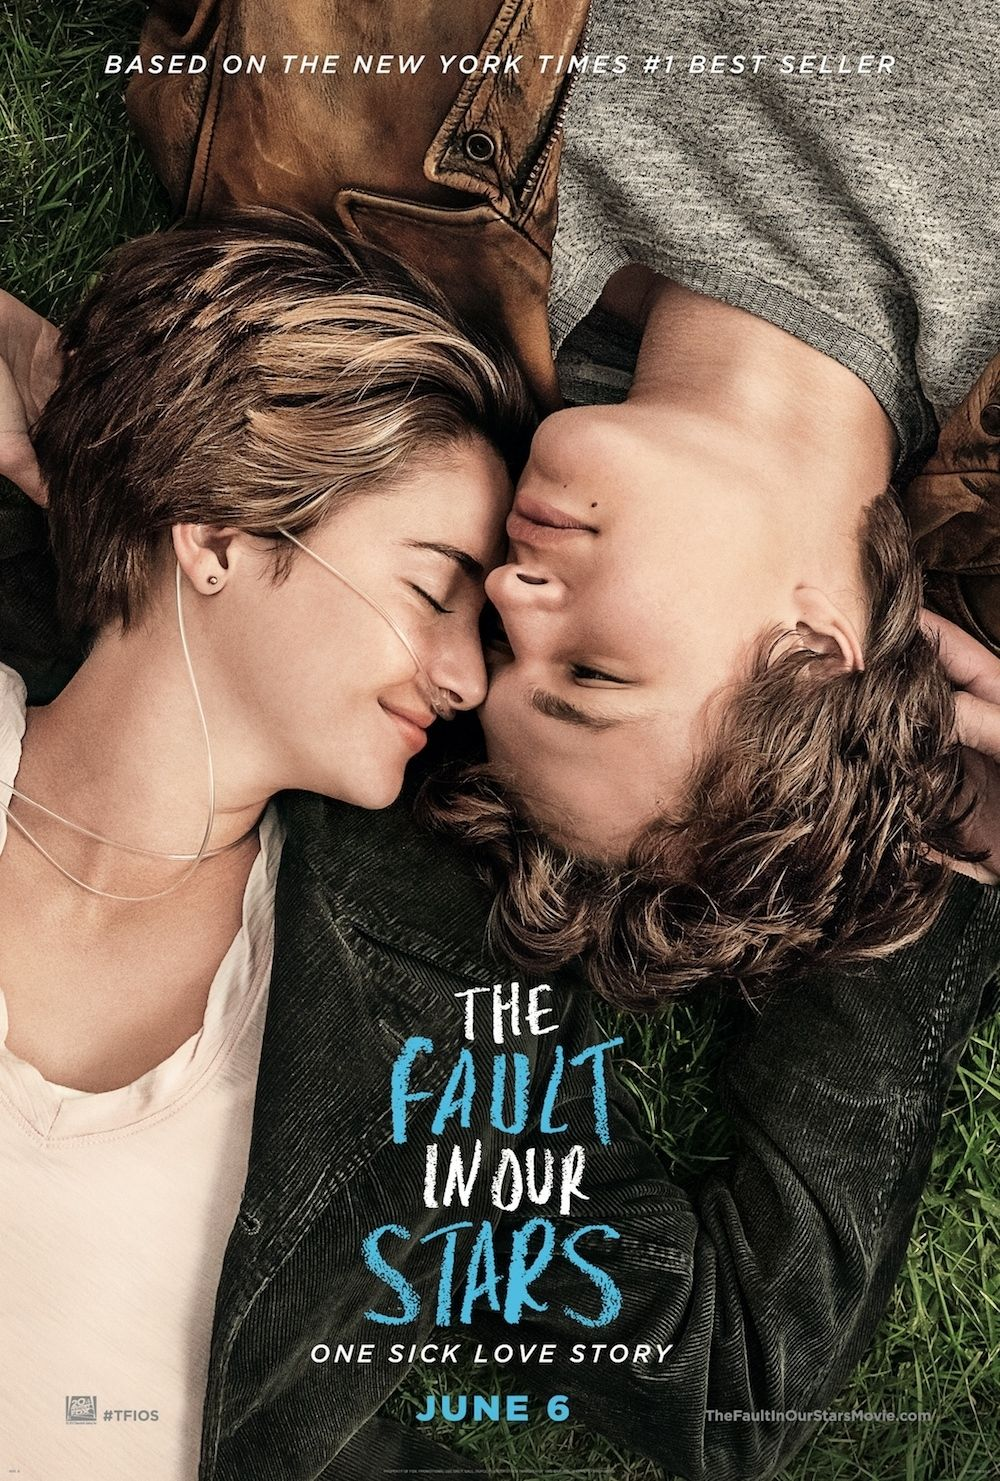 THE FAULT IN OUR STARS official movie poster #TFIOS